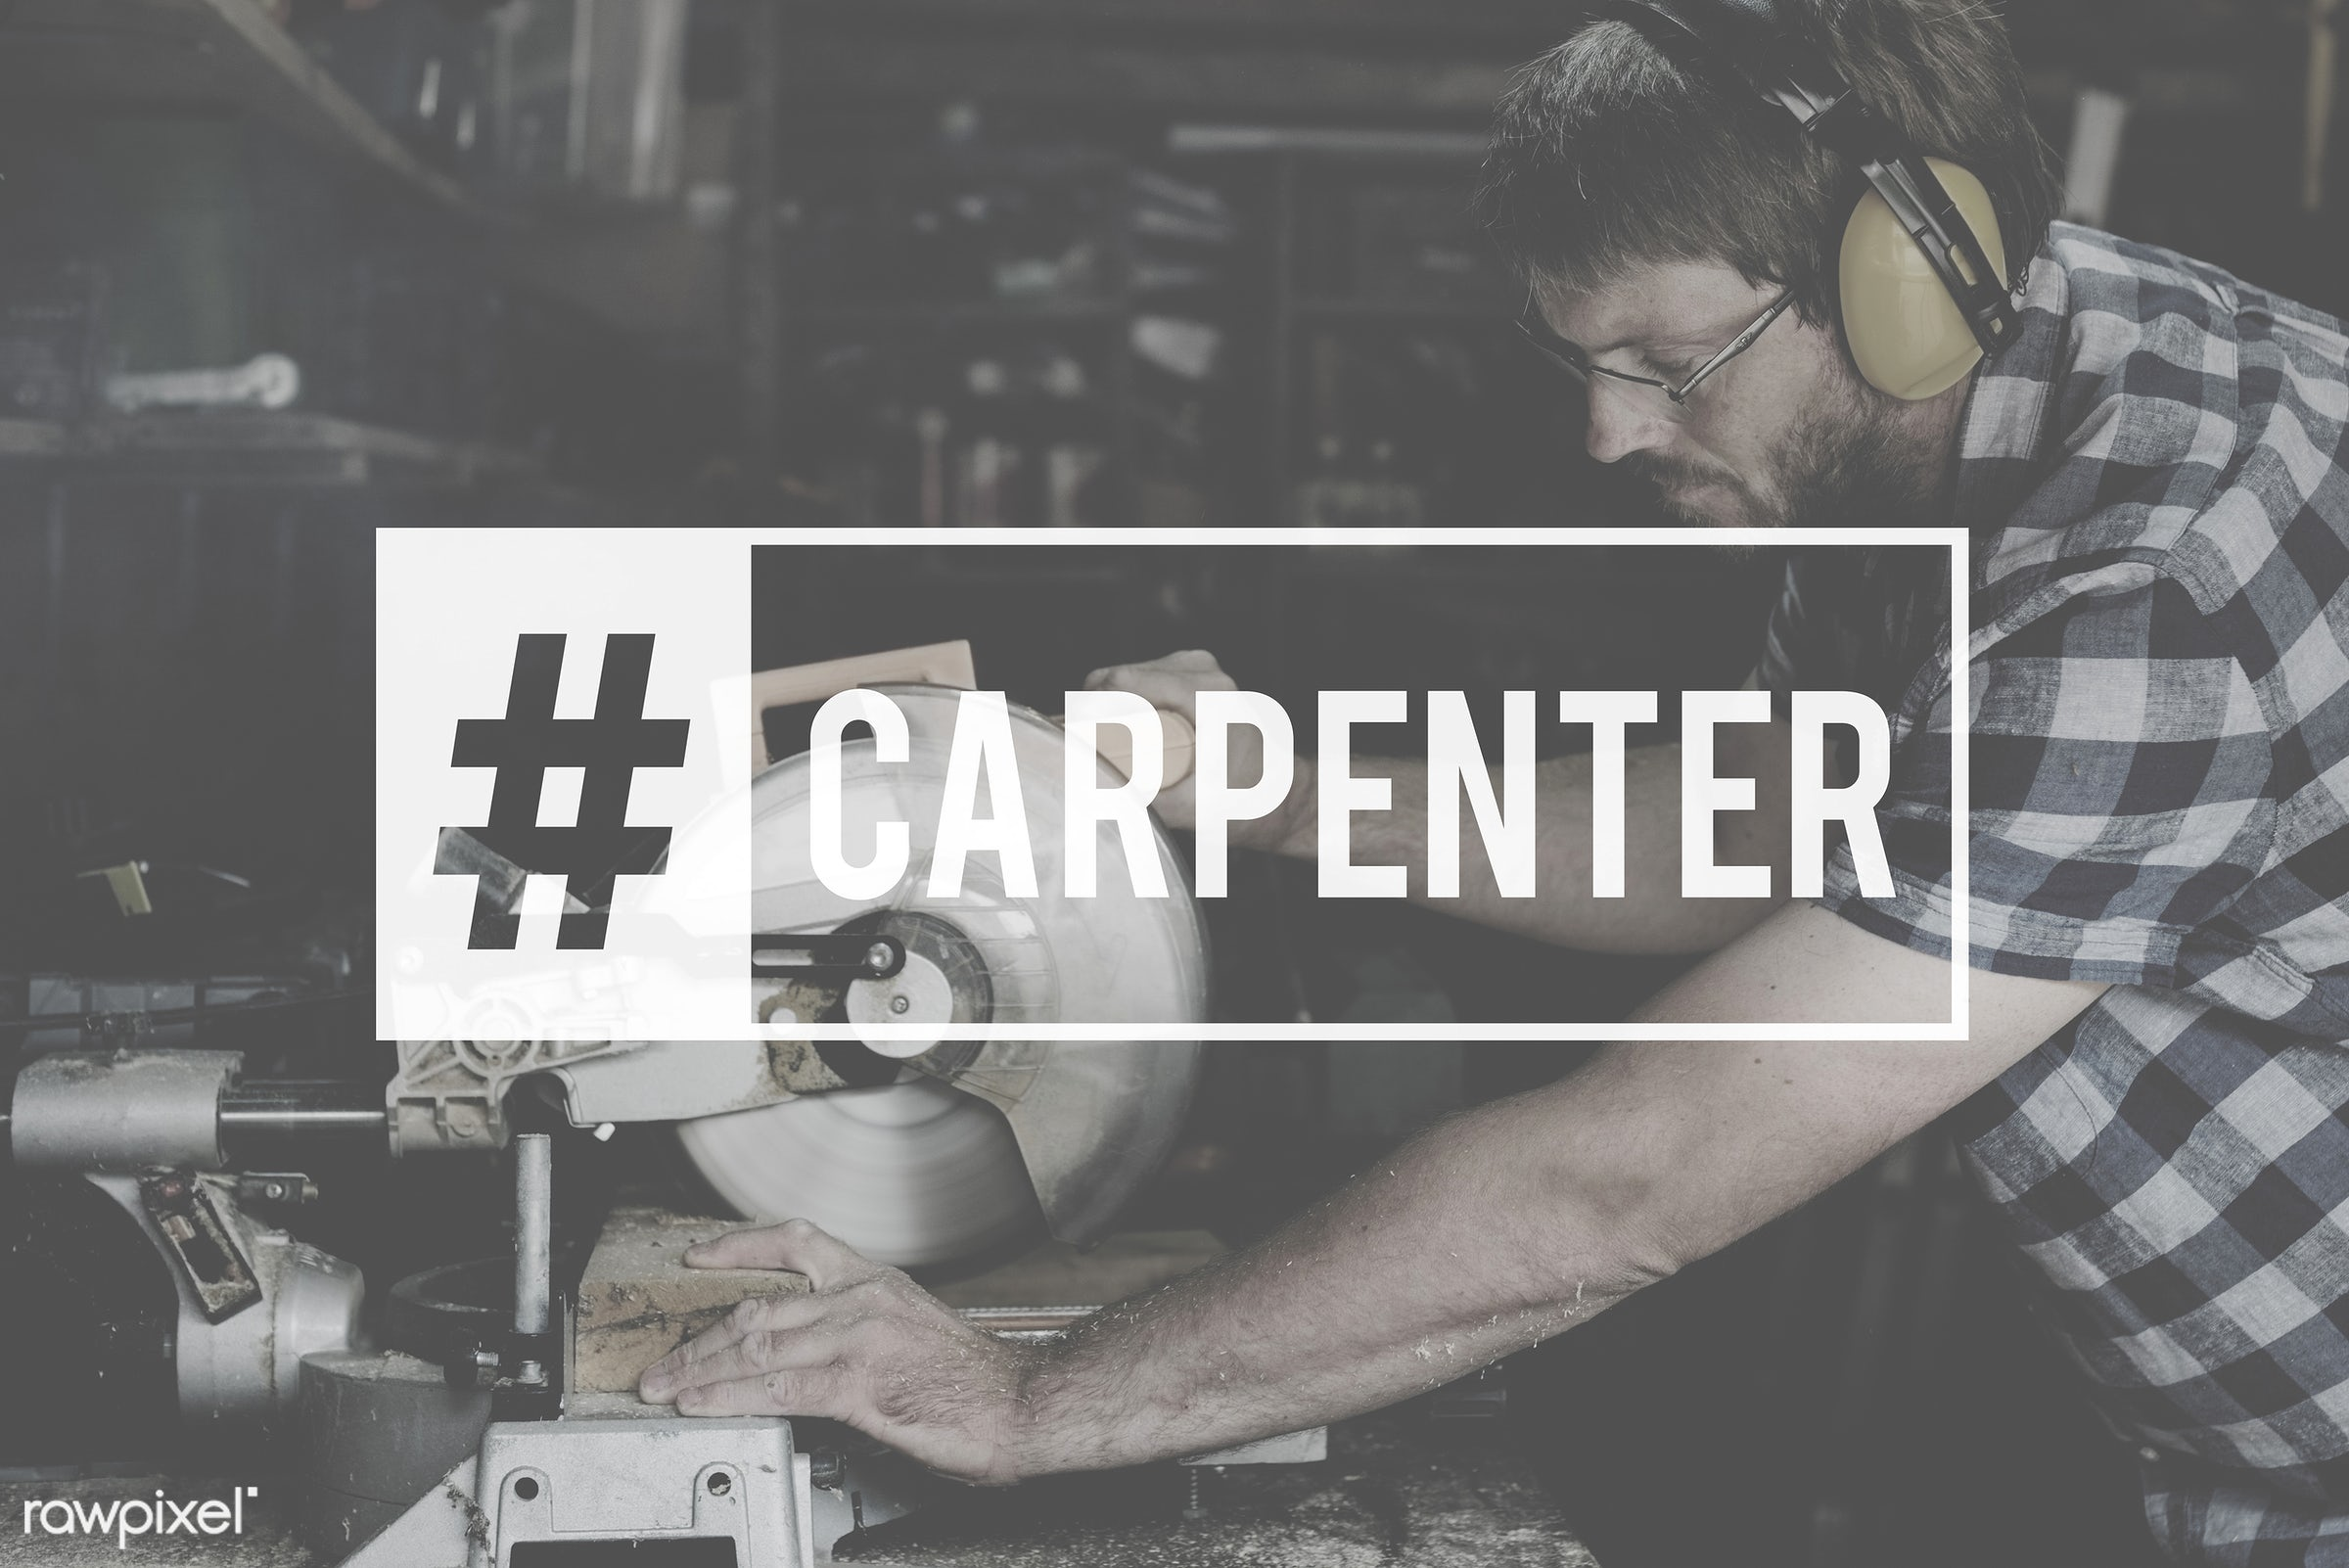 accuracy, aptitude, artistry, carpenter, carpentry, cleverness, craft, craft-man, craftsman, ear muff, equipment, expertness...